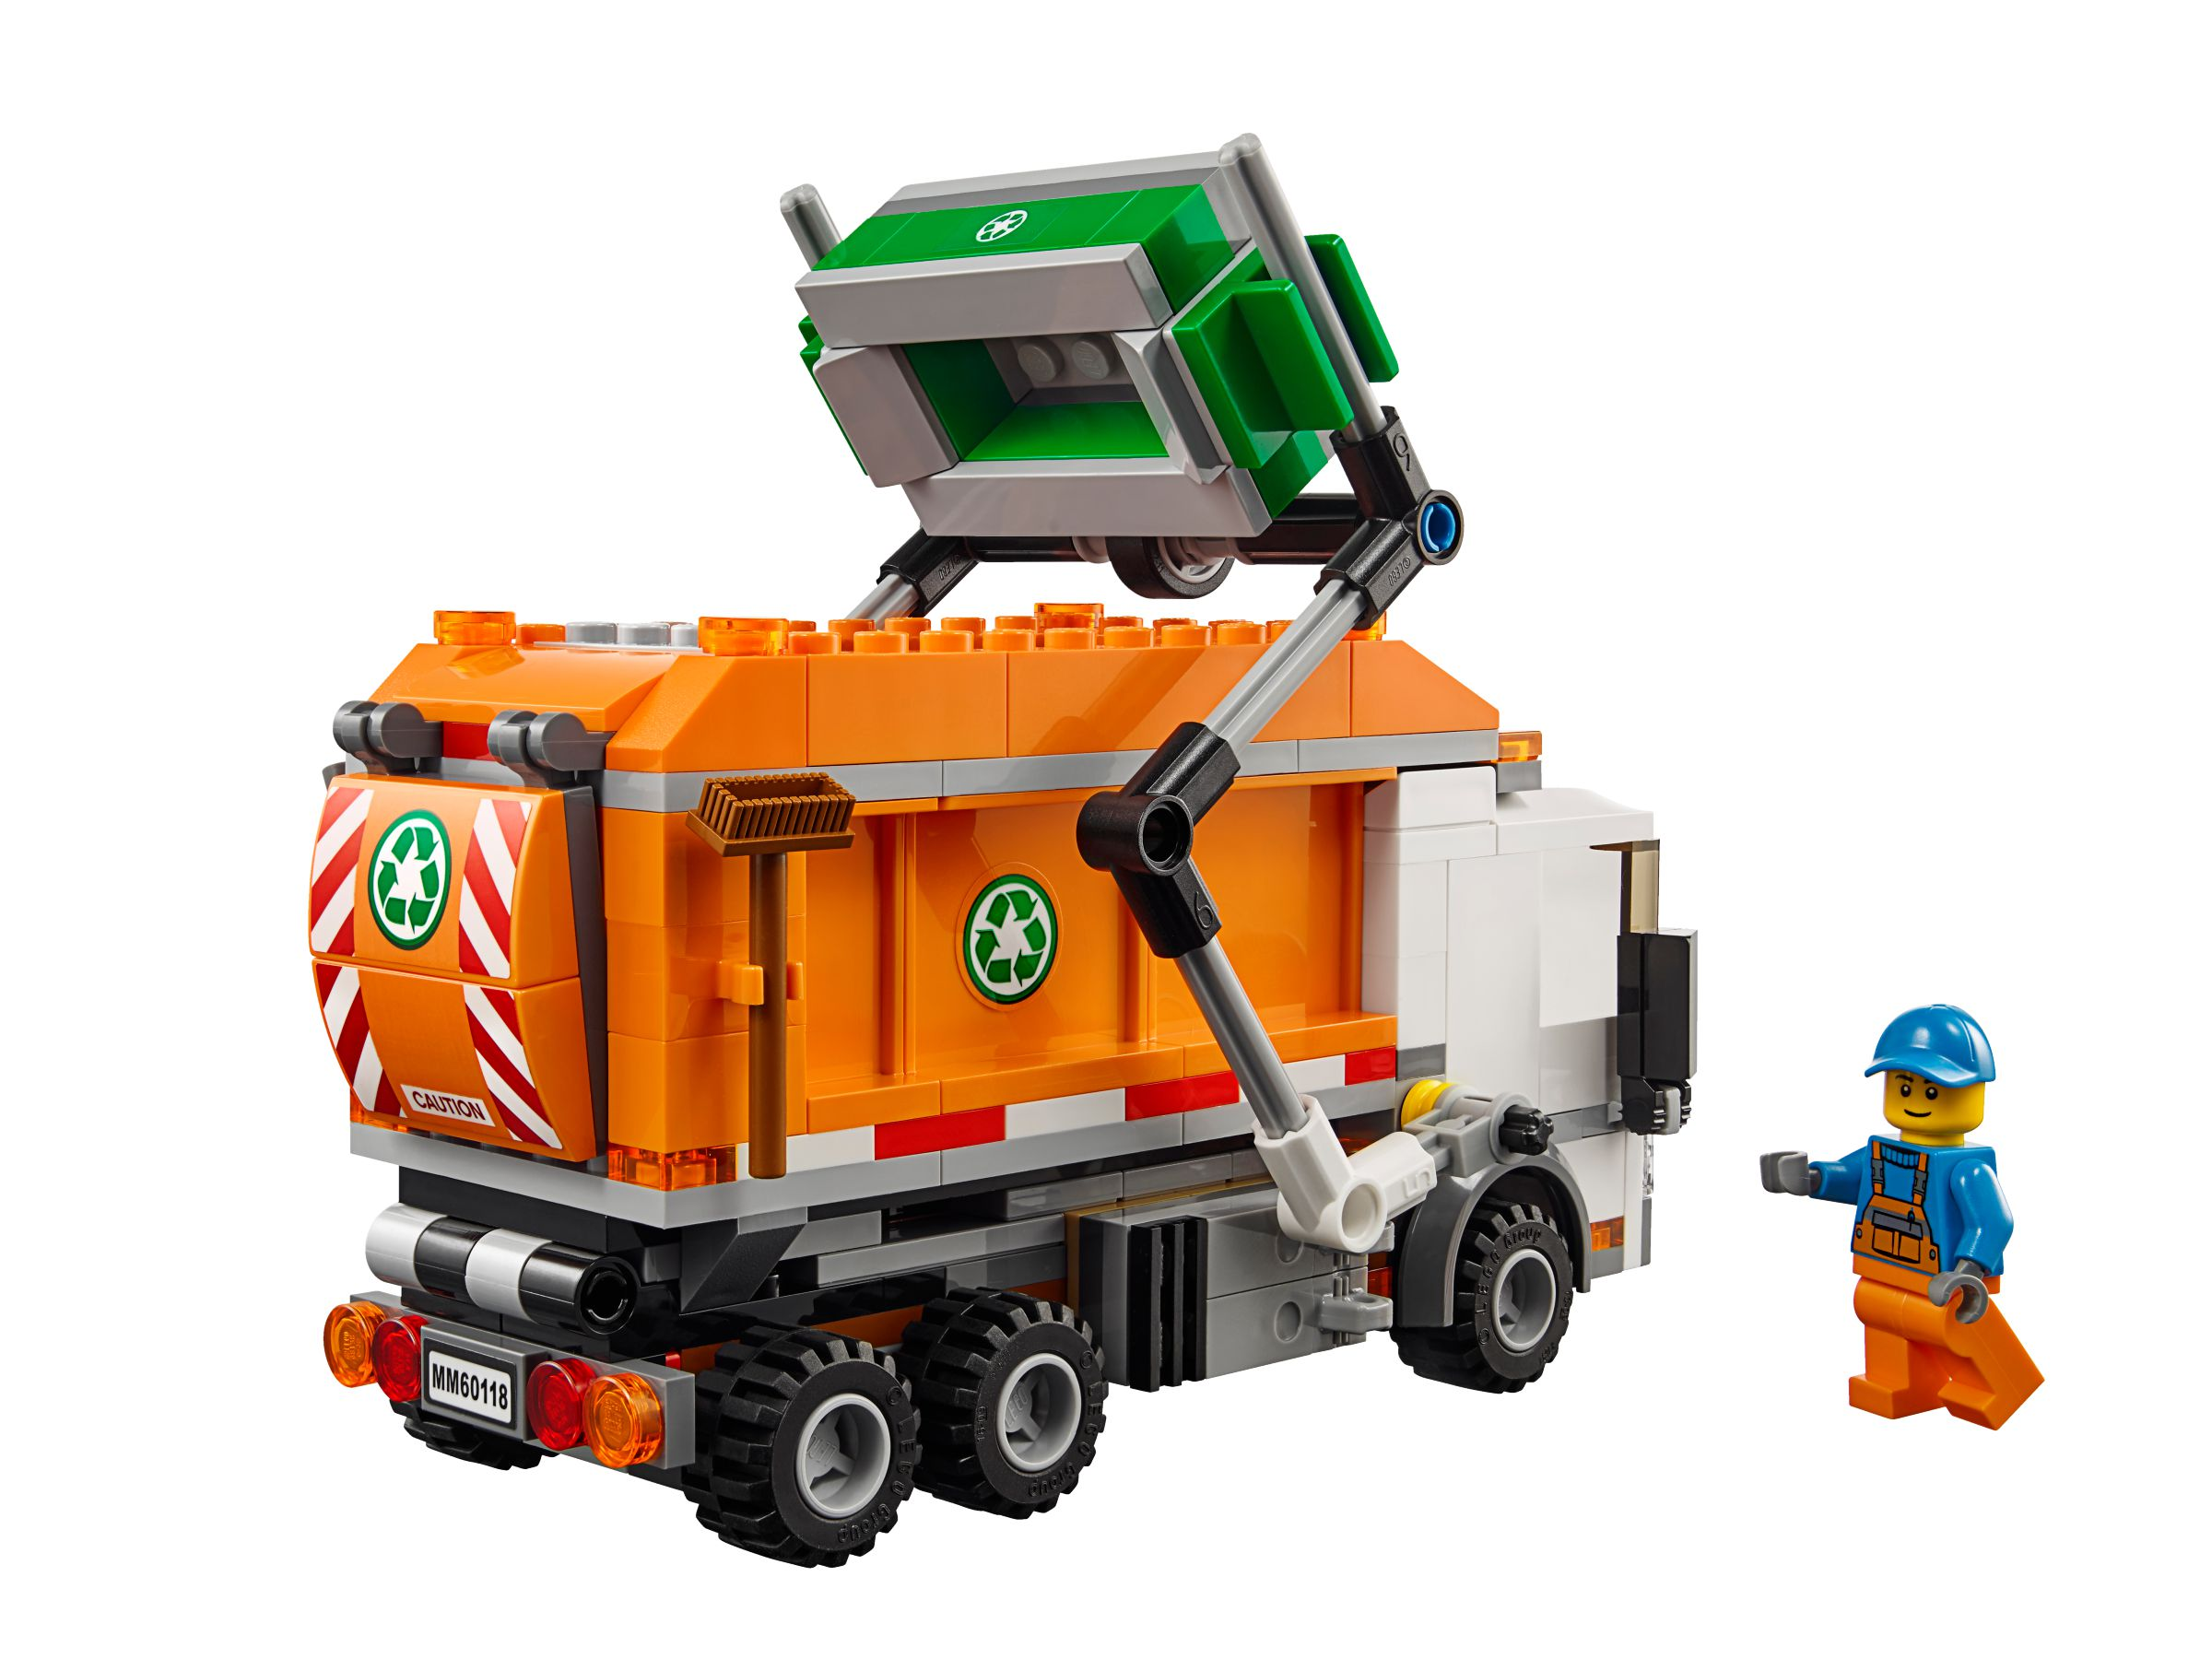 m llabfuhr 60118 lego city 2016 im preisvergleich garbage truck. Black Bedroom Furniture Sets. Home Design Ideas